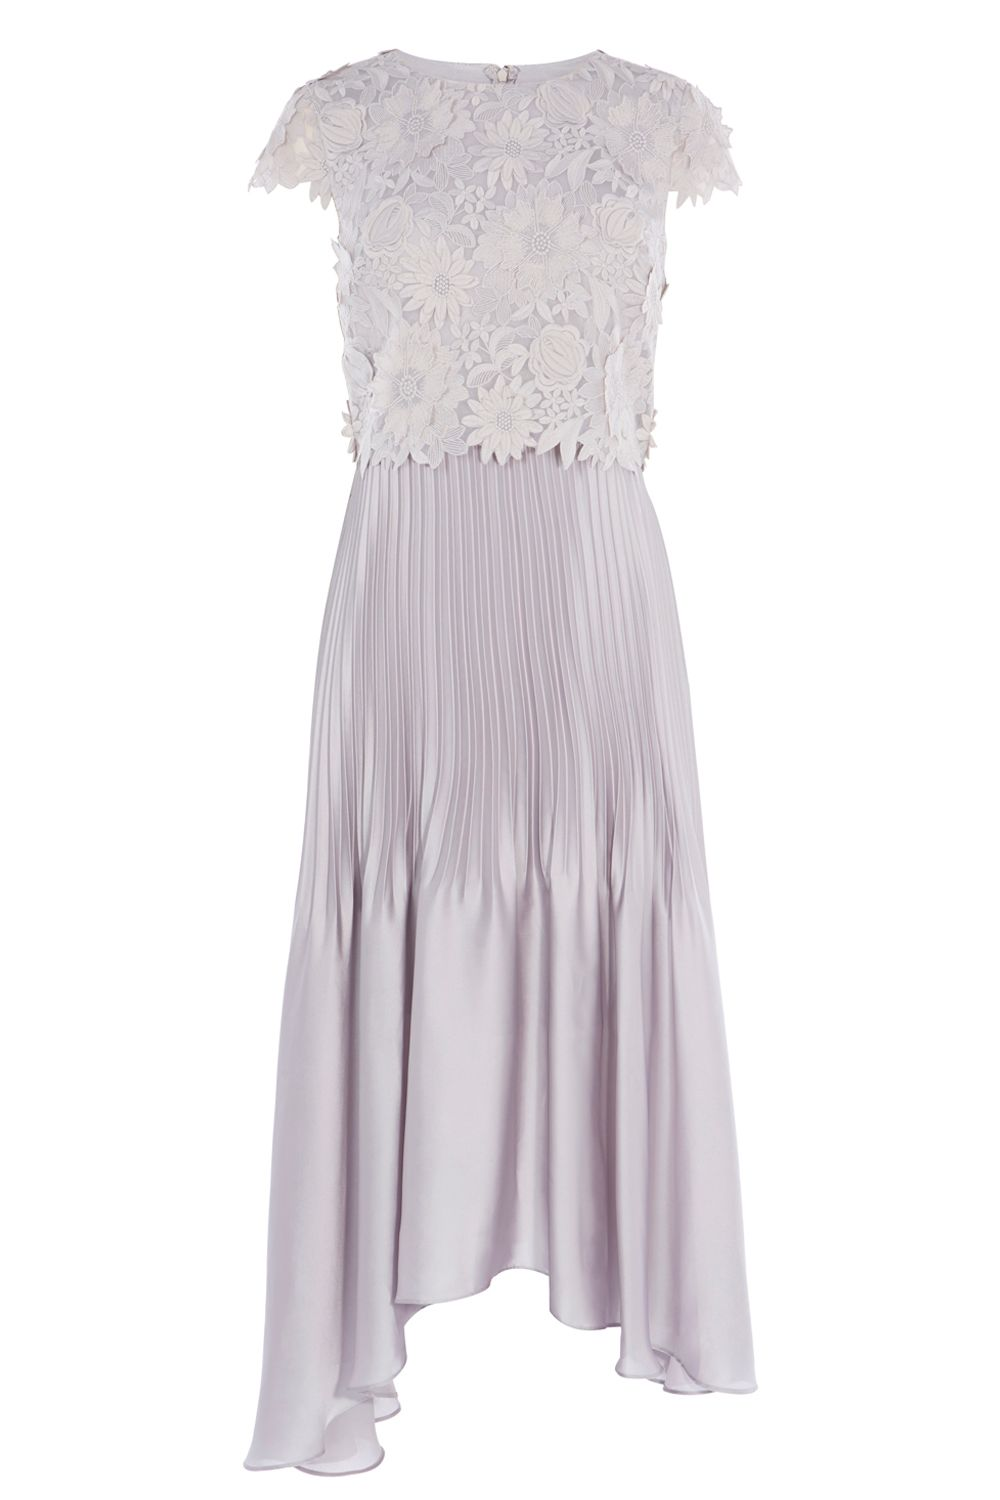 Buy Boardwalk Empire Inspired Dresses Coast Darianna Dress Silver £149.00 AT vintagedancer.com